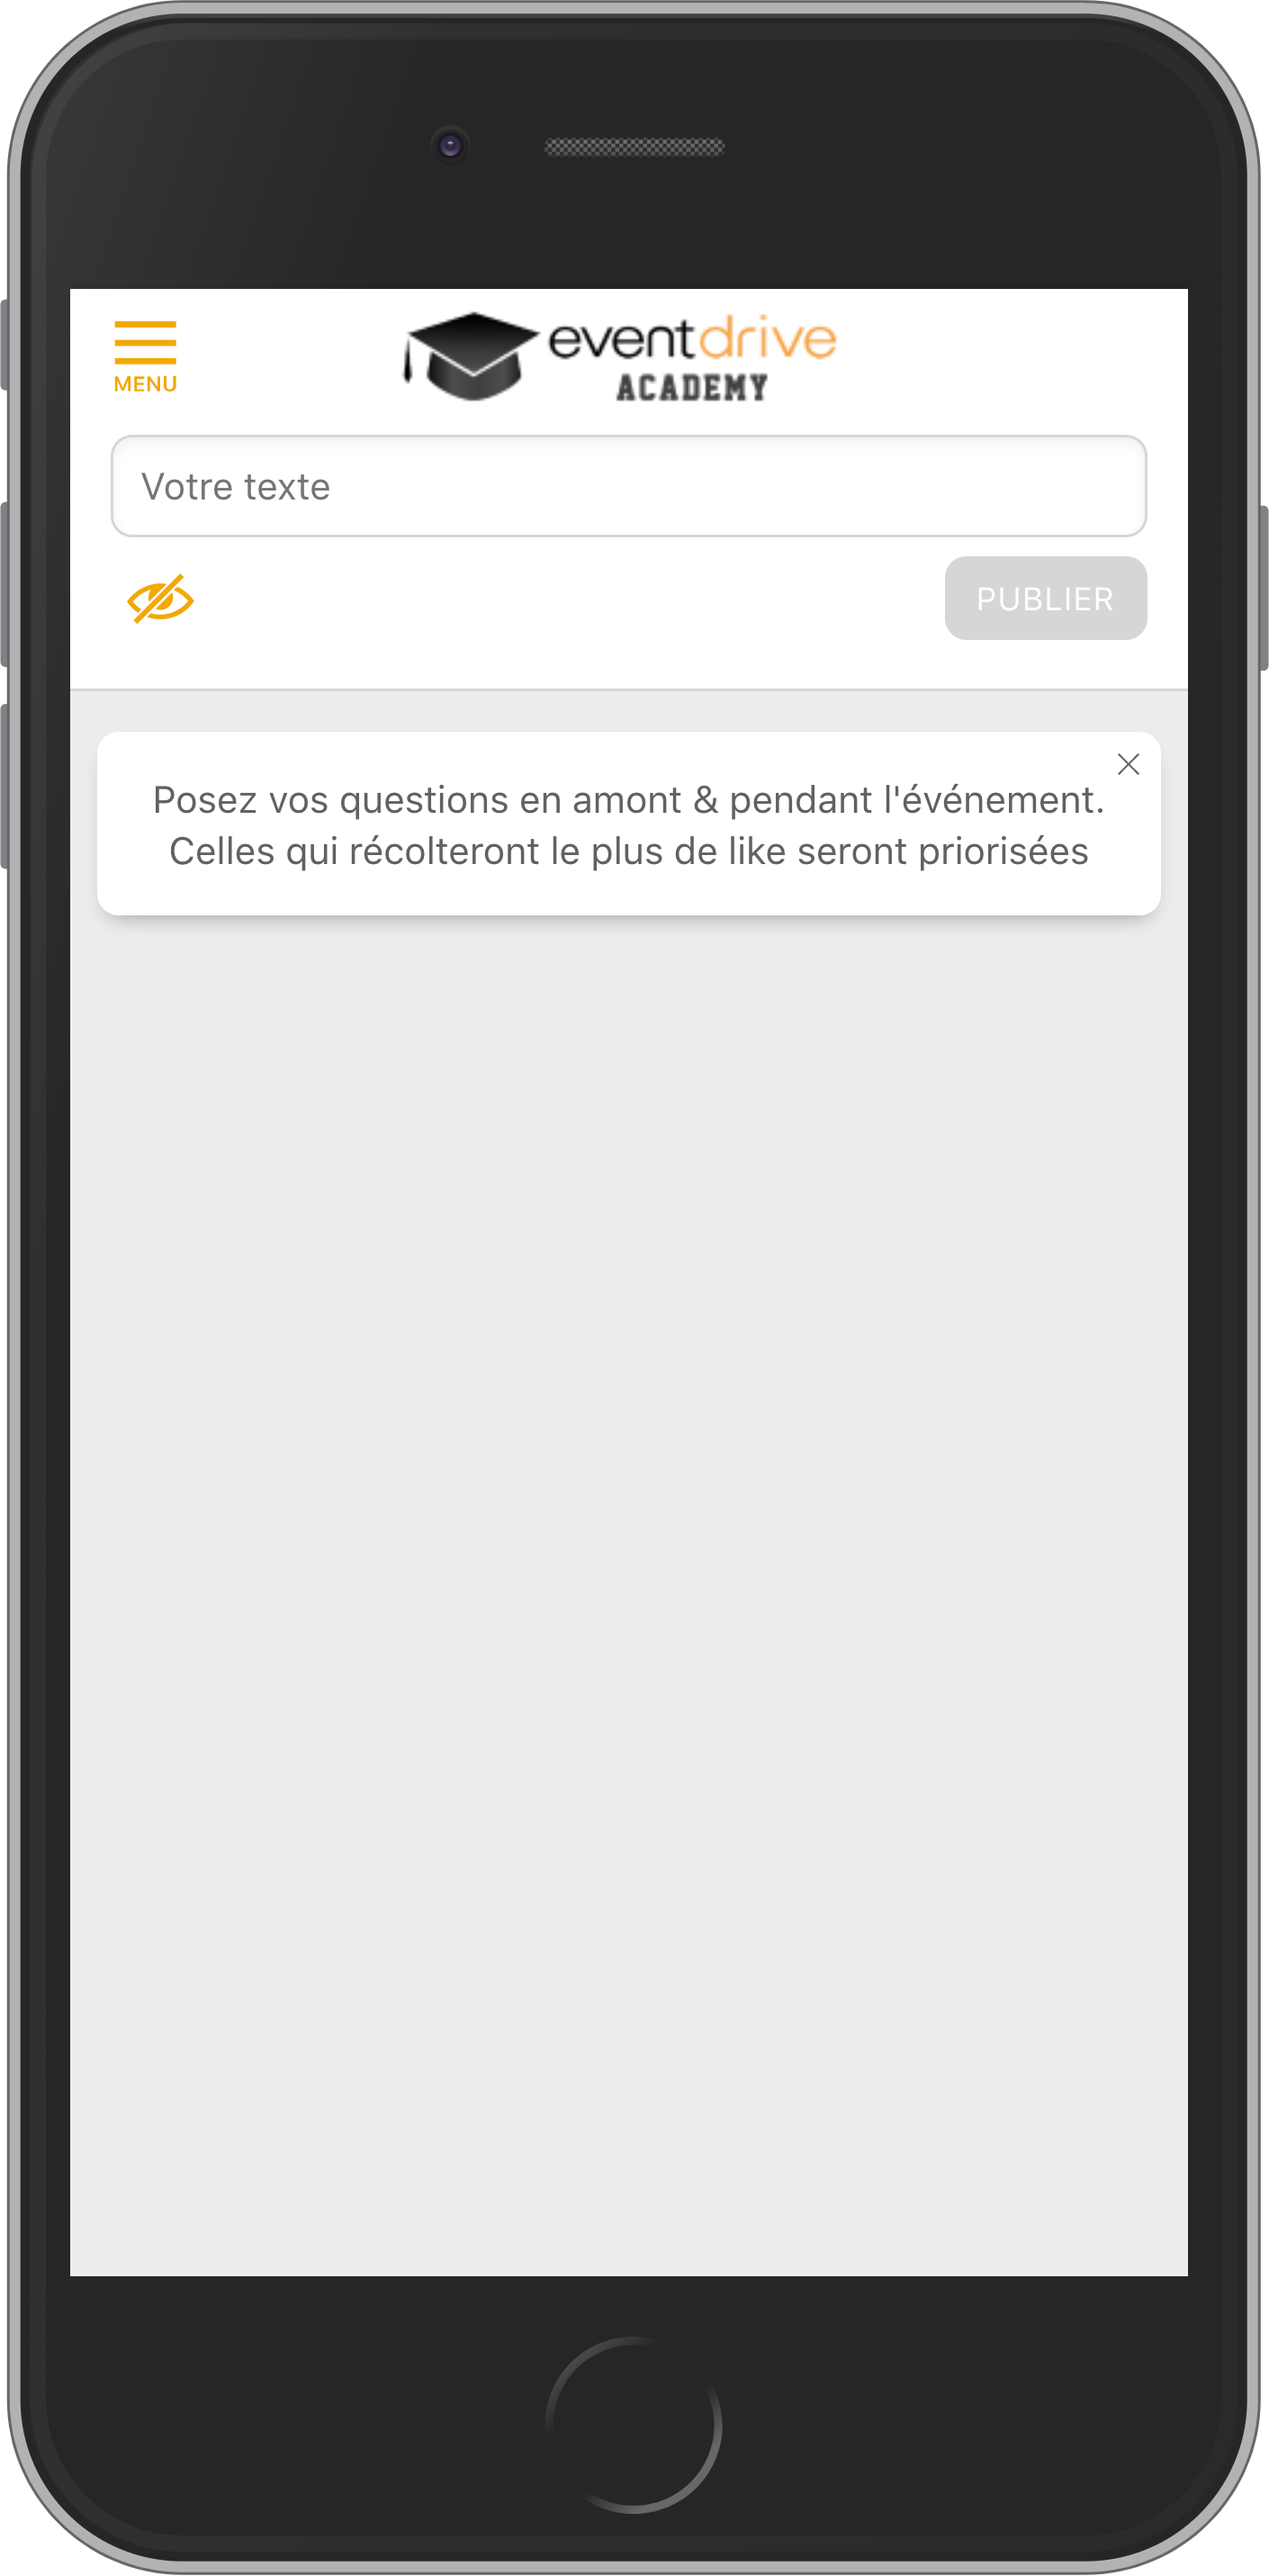 app-new.eventdrive.com__iPhone_6_7_8_Plus_.png